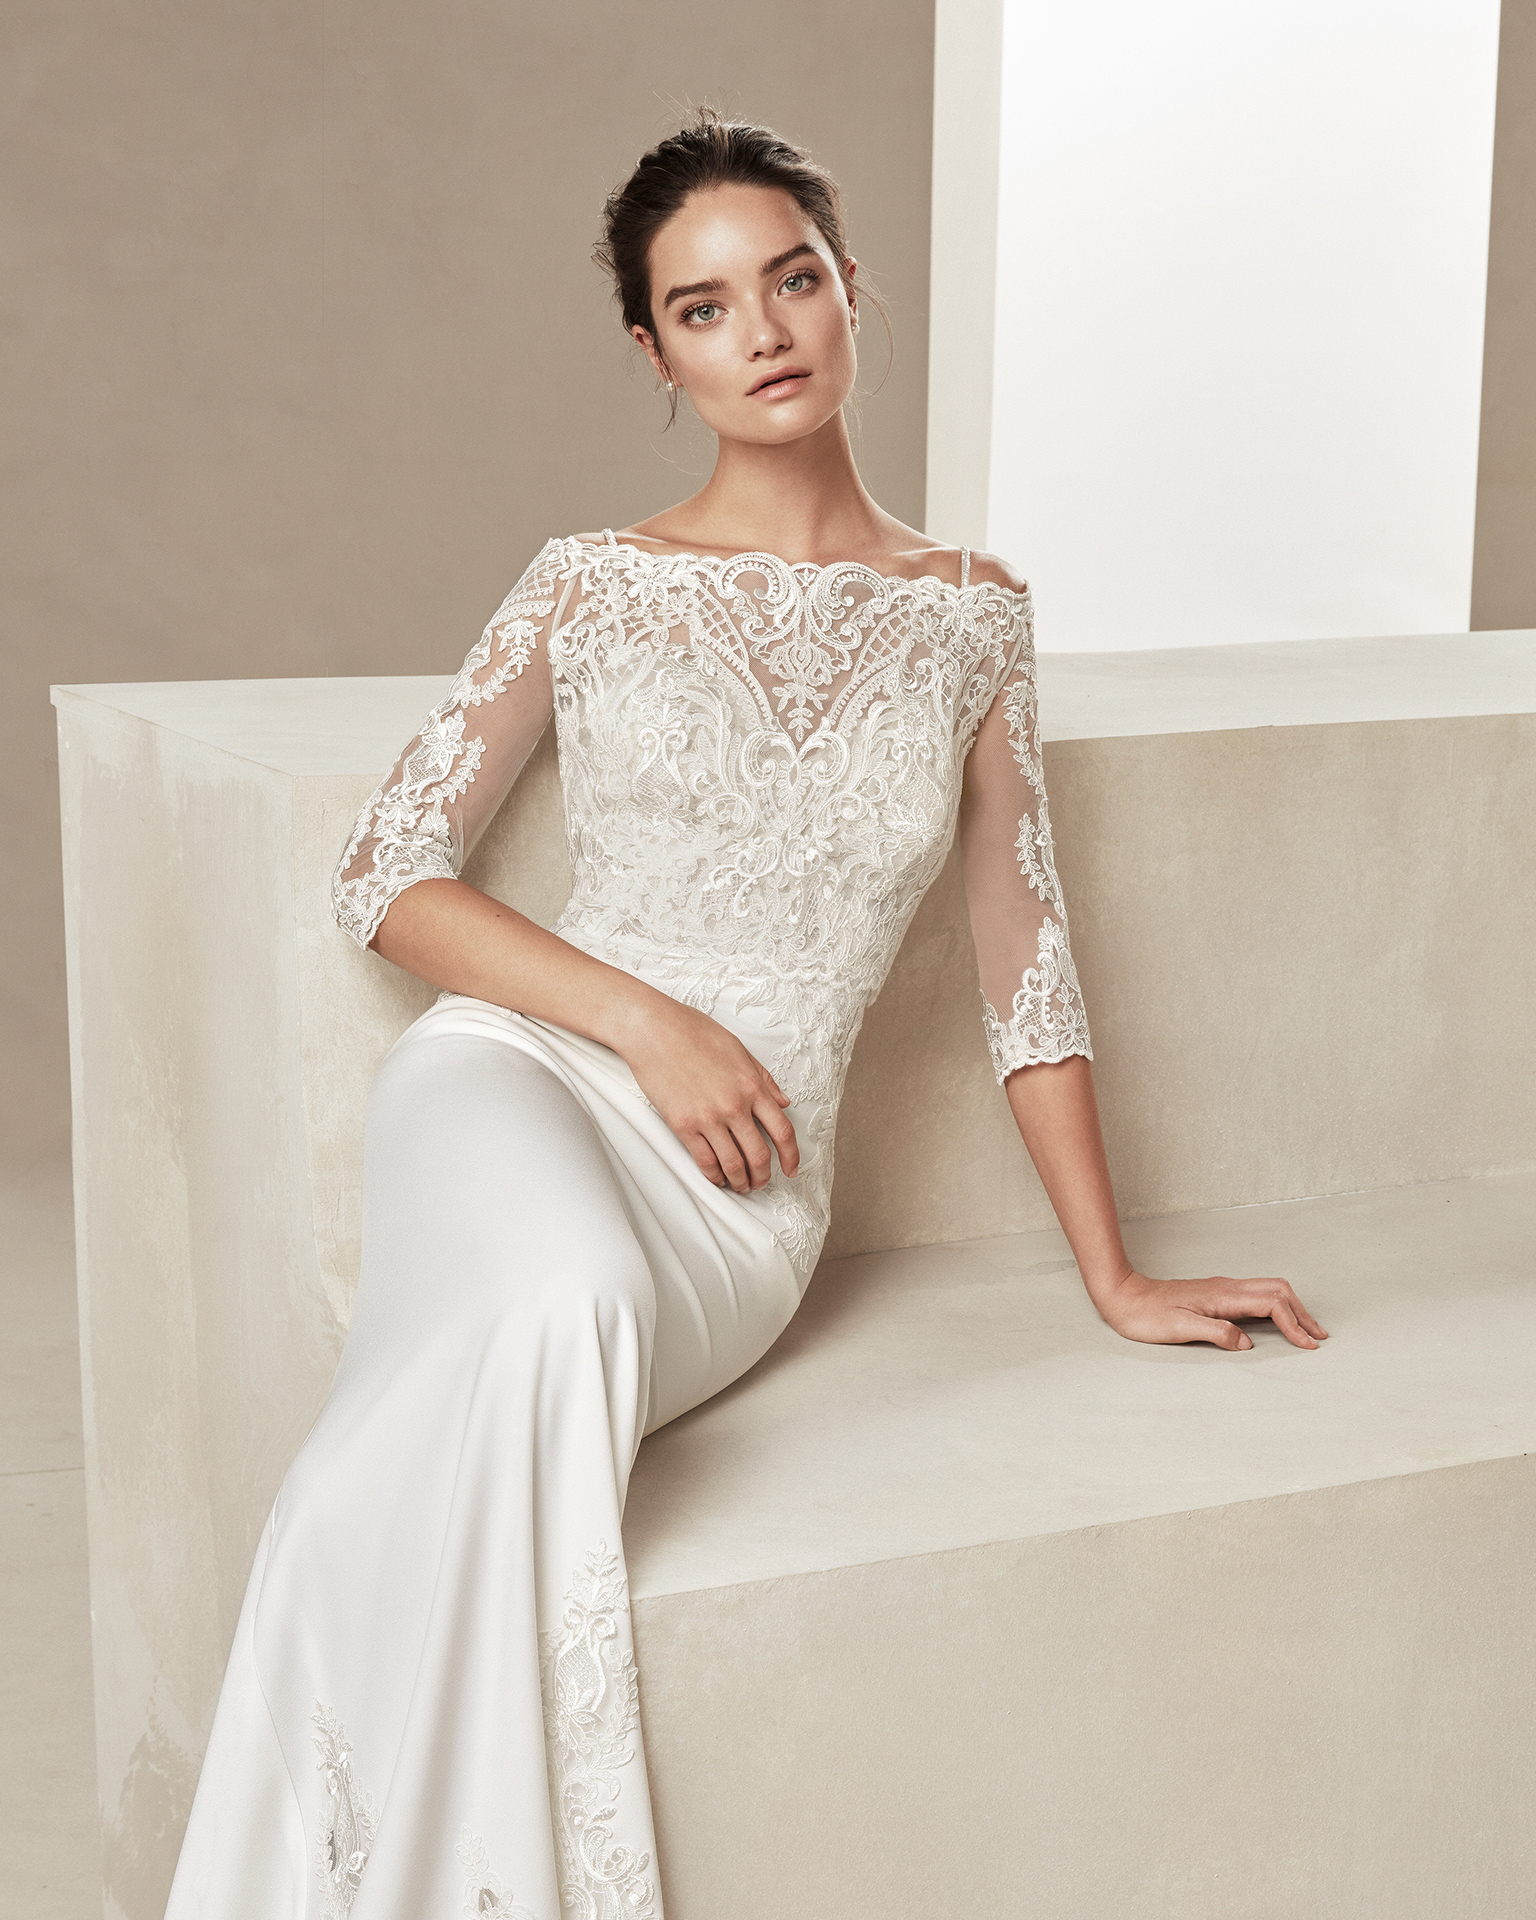 Beaded sheath-style wedding dress in crepe and lace. With sweetheart neckline and beaded straps. Available in natural. 2019 ALMANOVIA Collection.